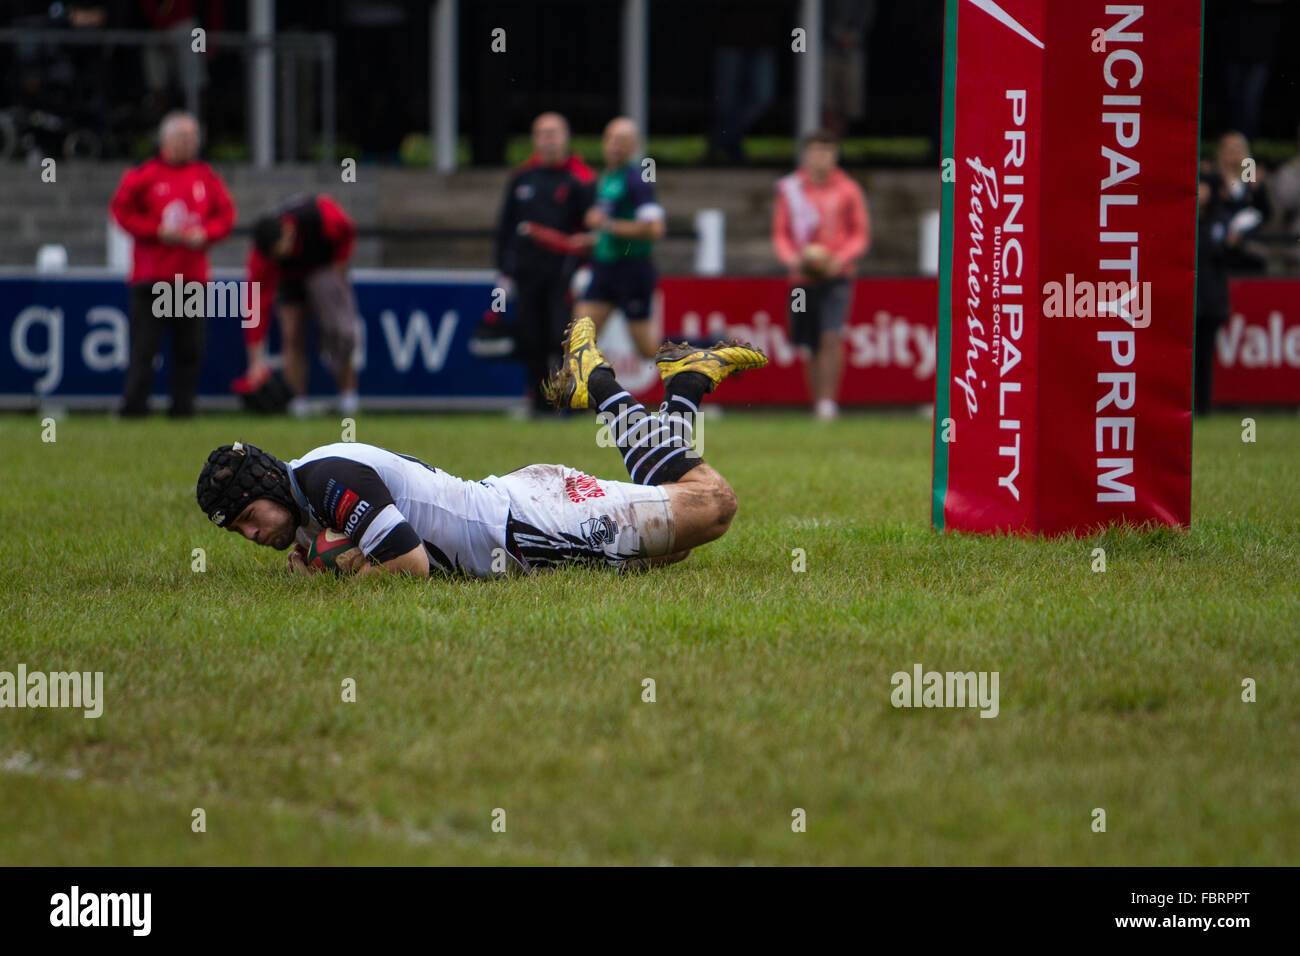 Wales, United Kingdom. October 10 2015. Pontypridd RFC play Aberavon RFC during their Principality Premiership match - Stock Image